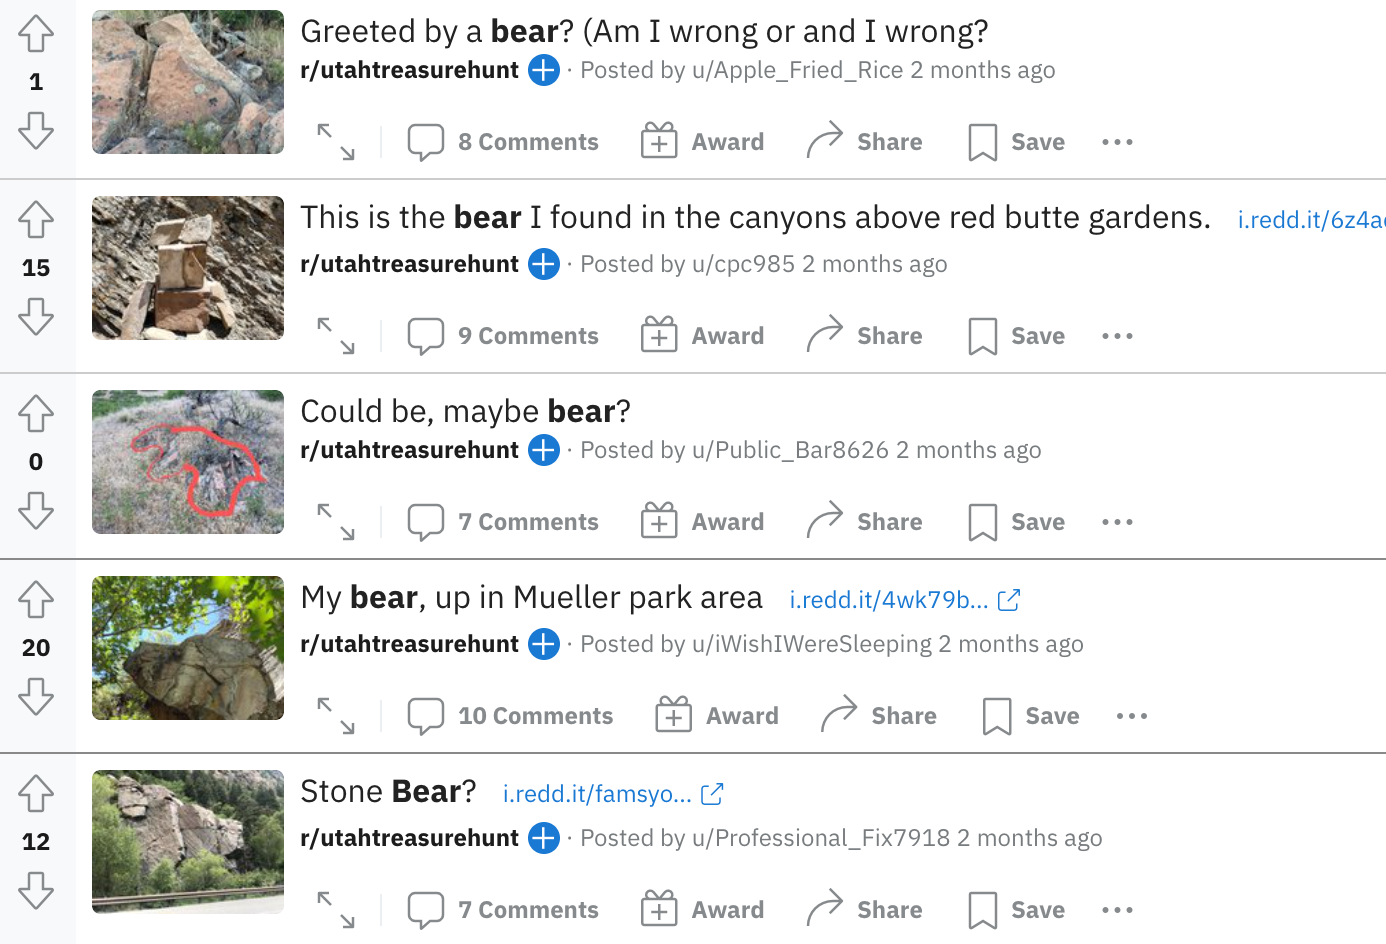 A list of Reddit posts inquiring about rocks that look like bears.